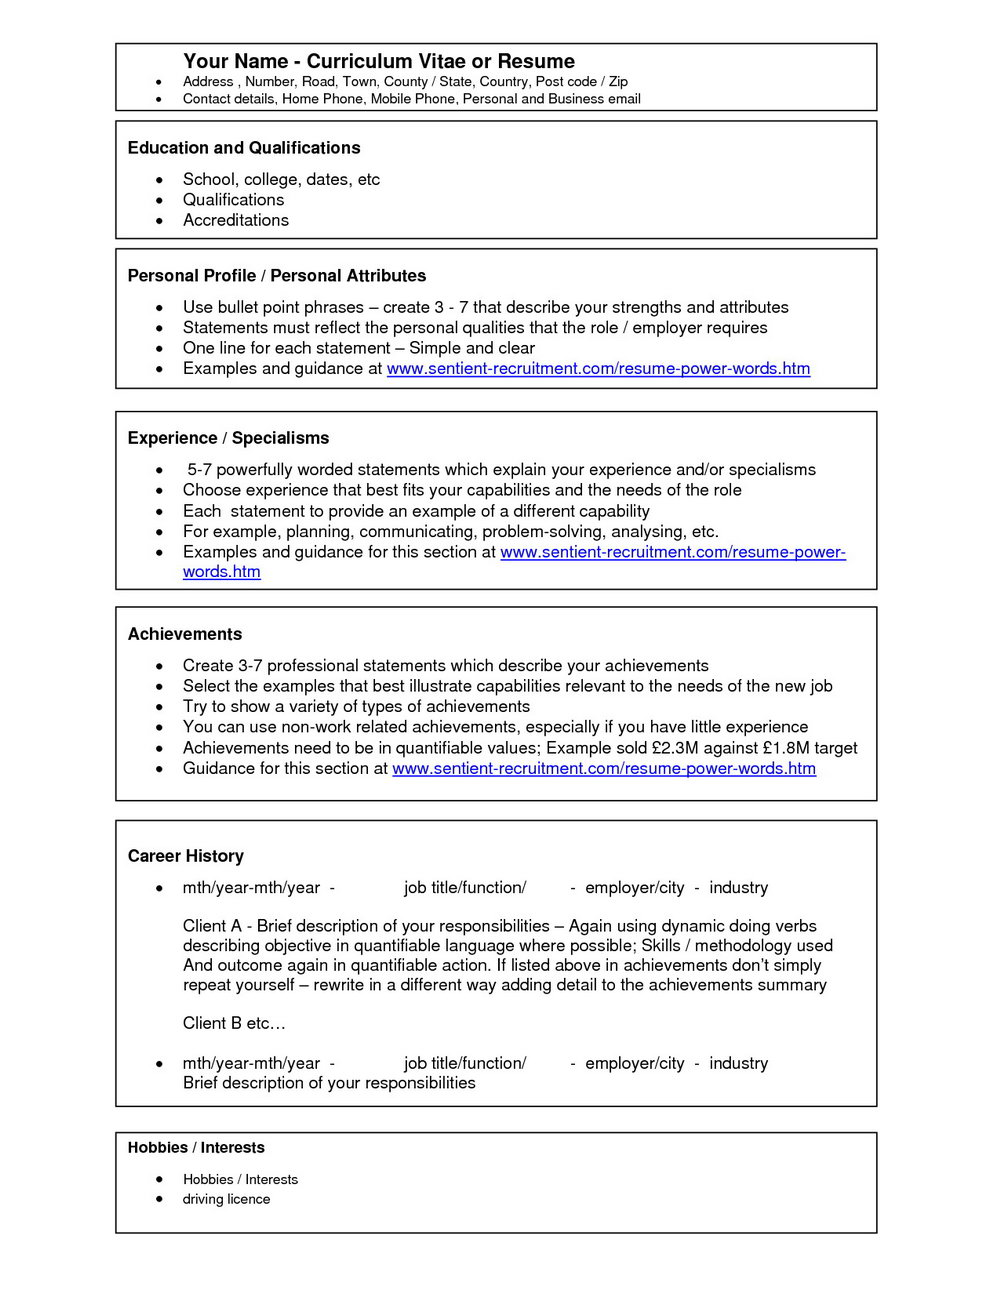 Free Resume Template Download 2018